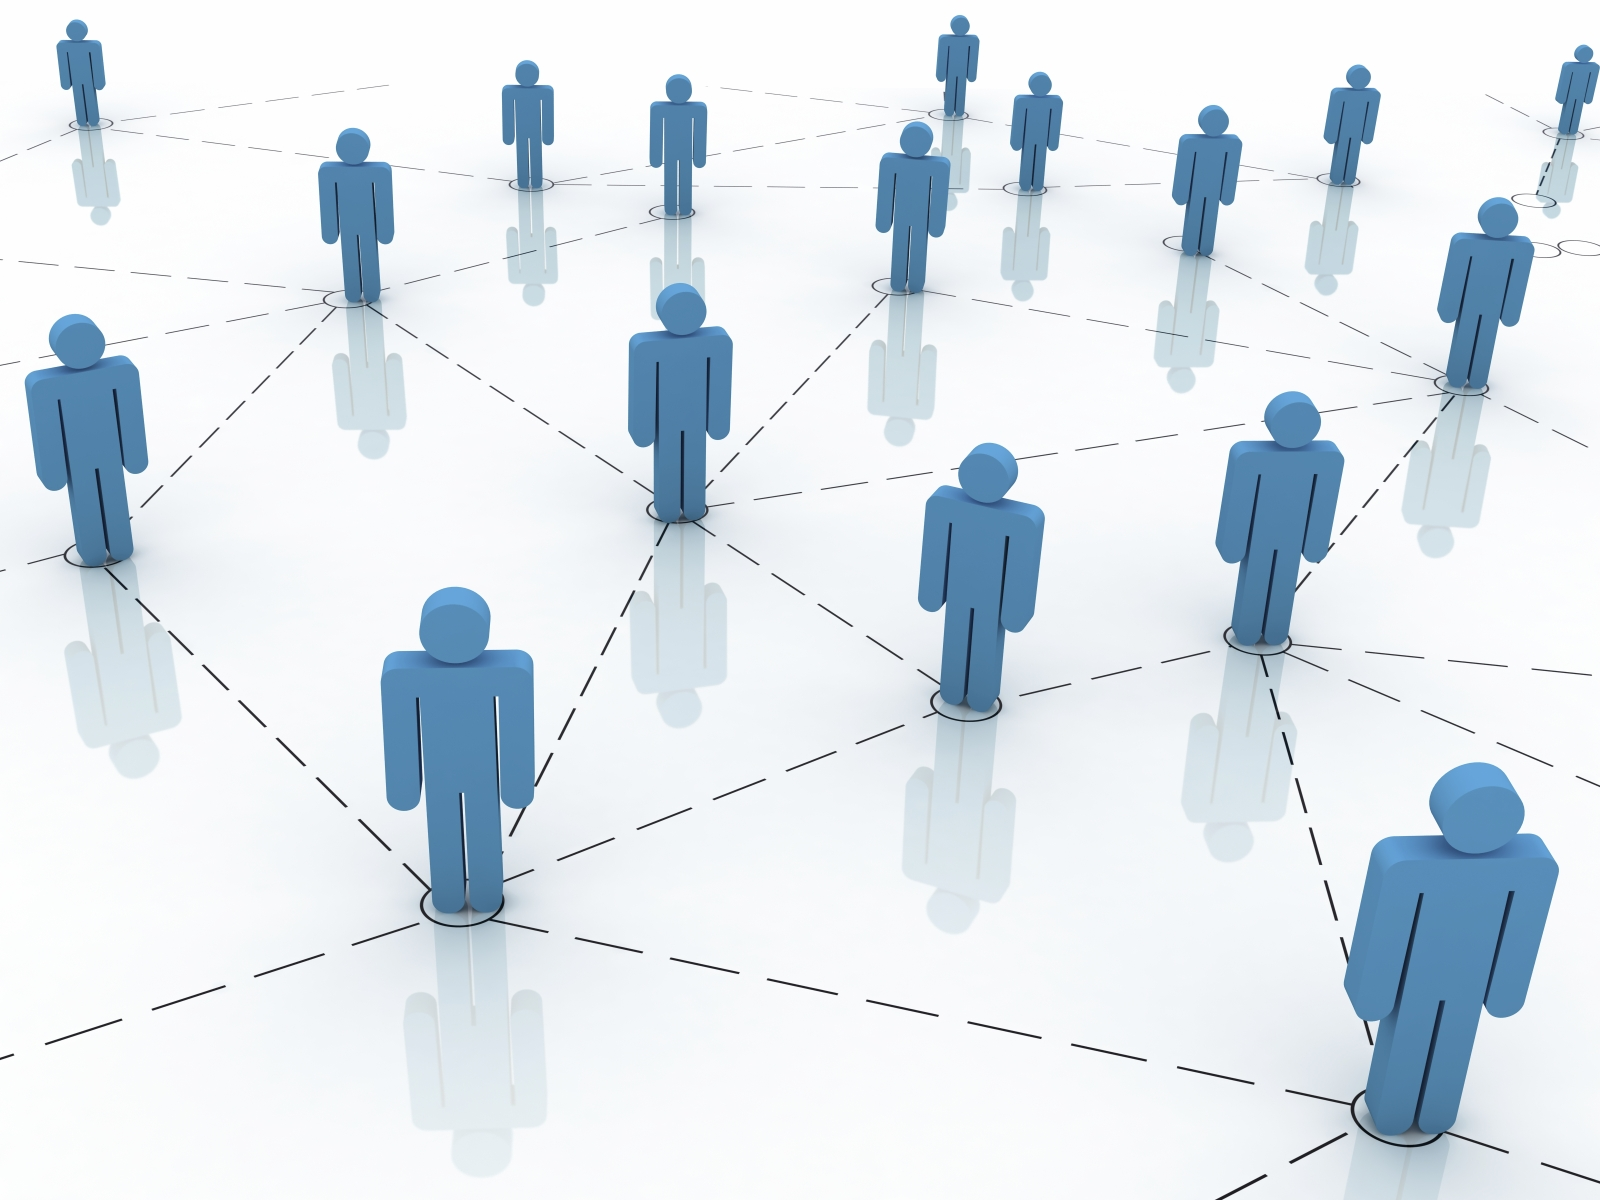 Connecting Business Network PPT Backgrounds